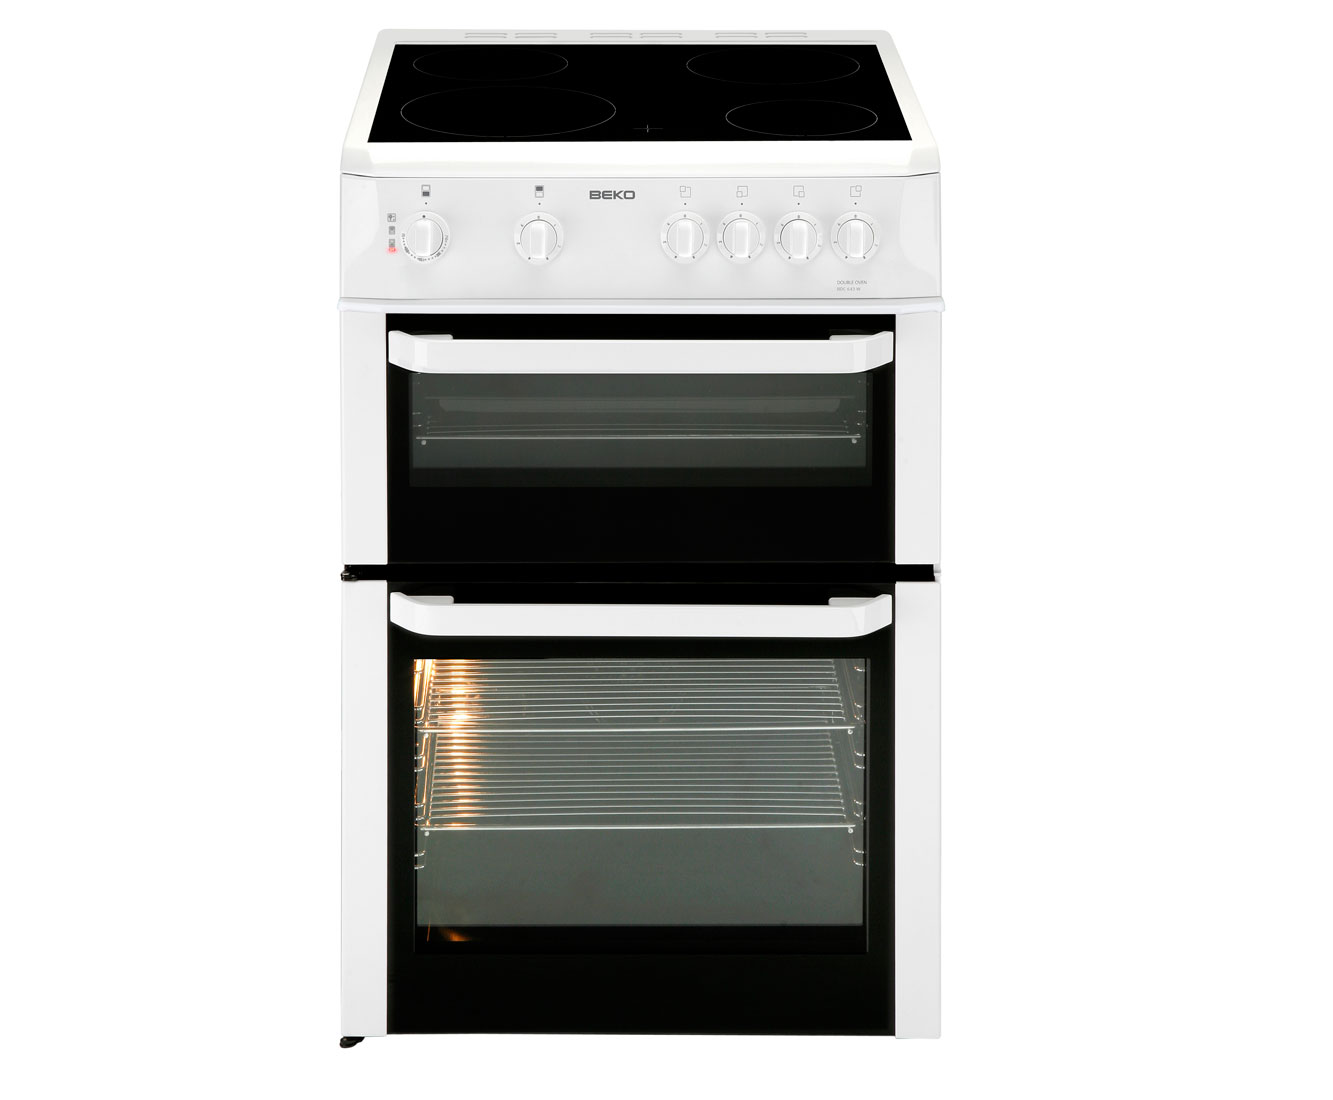 Beko BDC643W Electric Cooker with Ceramic Hob - White